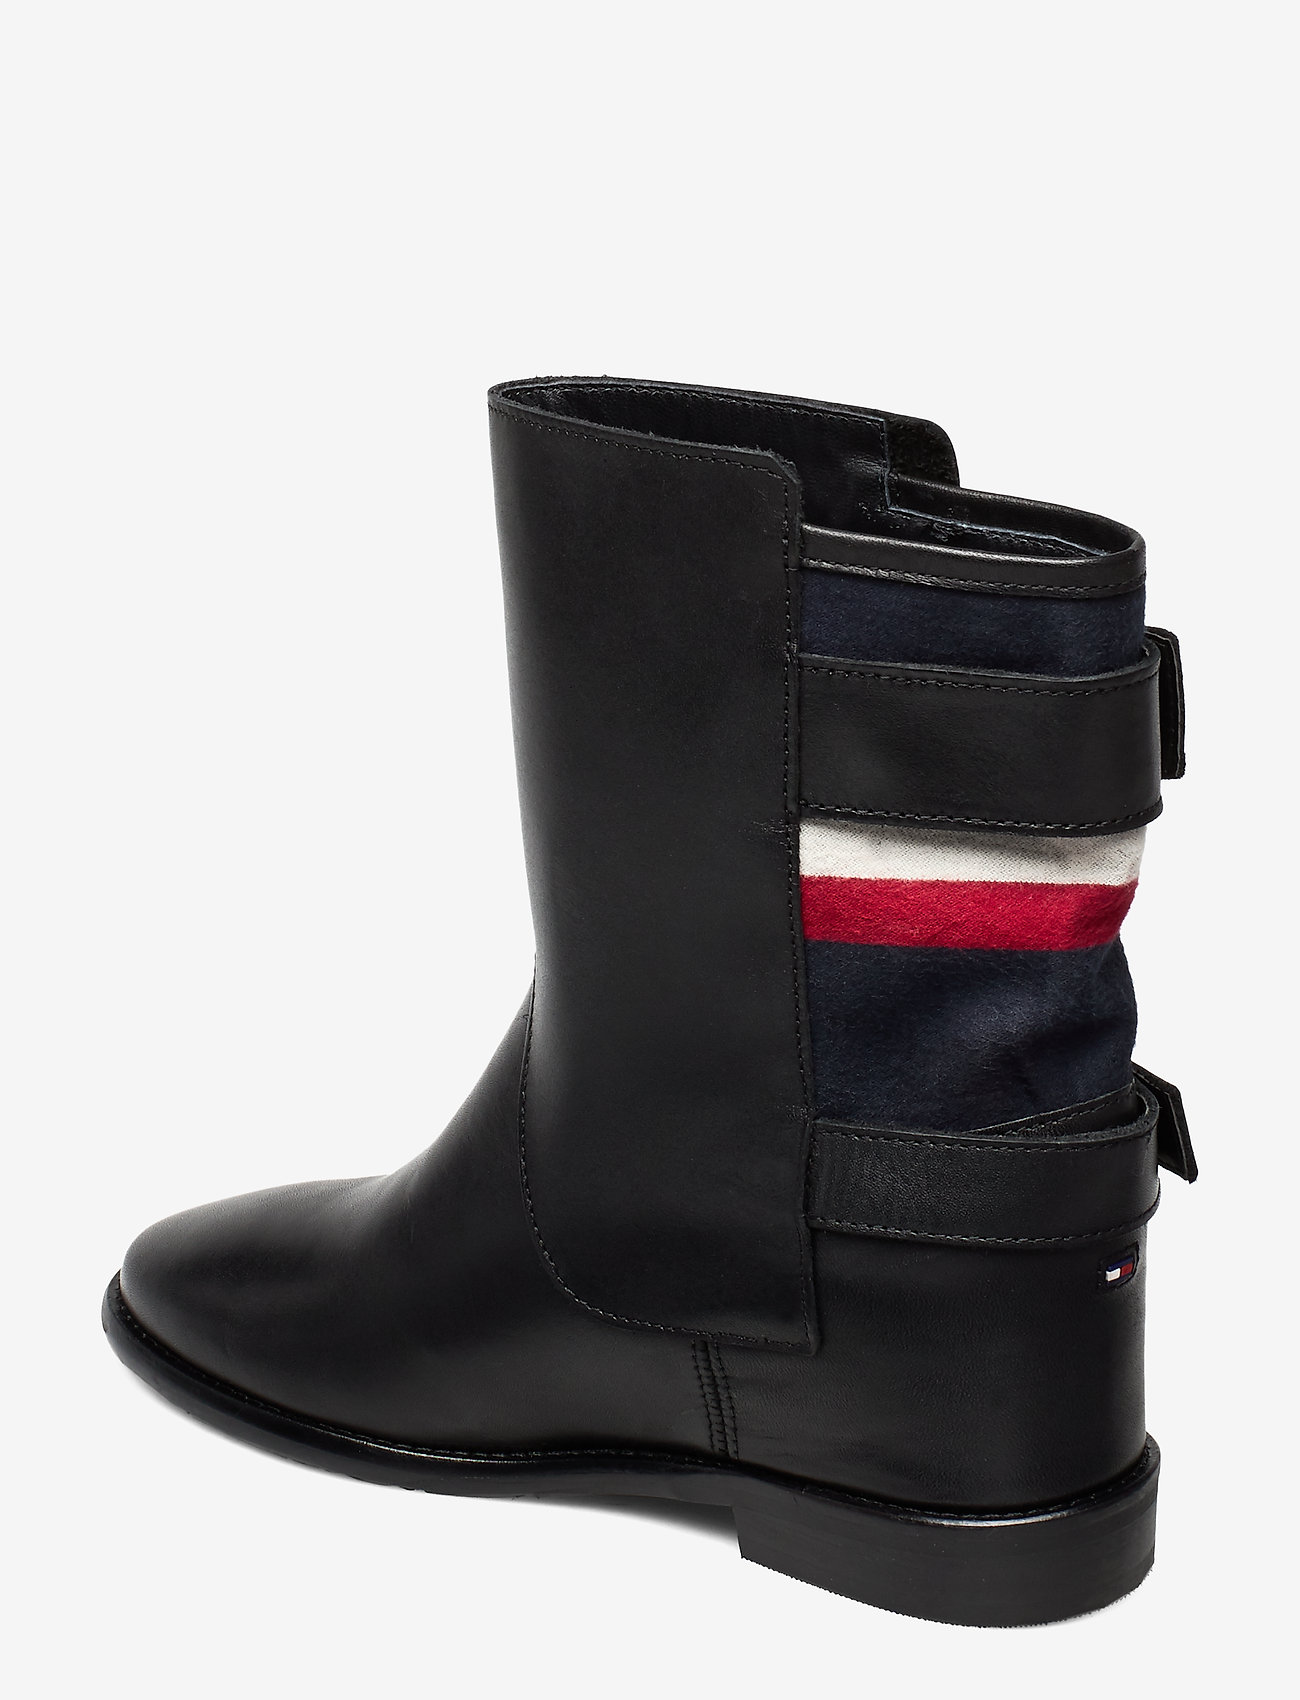 Modern Blanket Wedge Bootie (Black) - Tommy Hilfiger